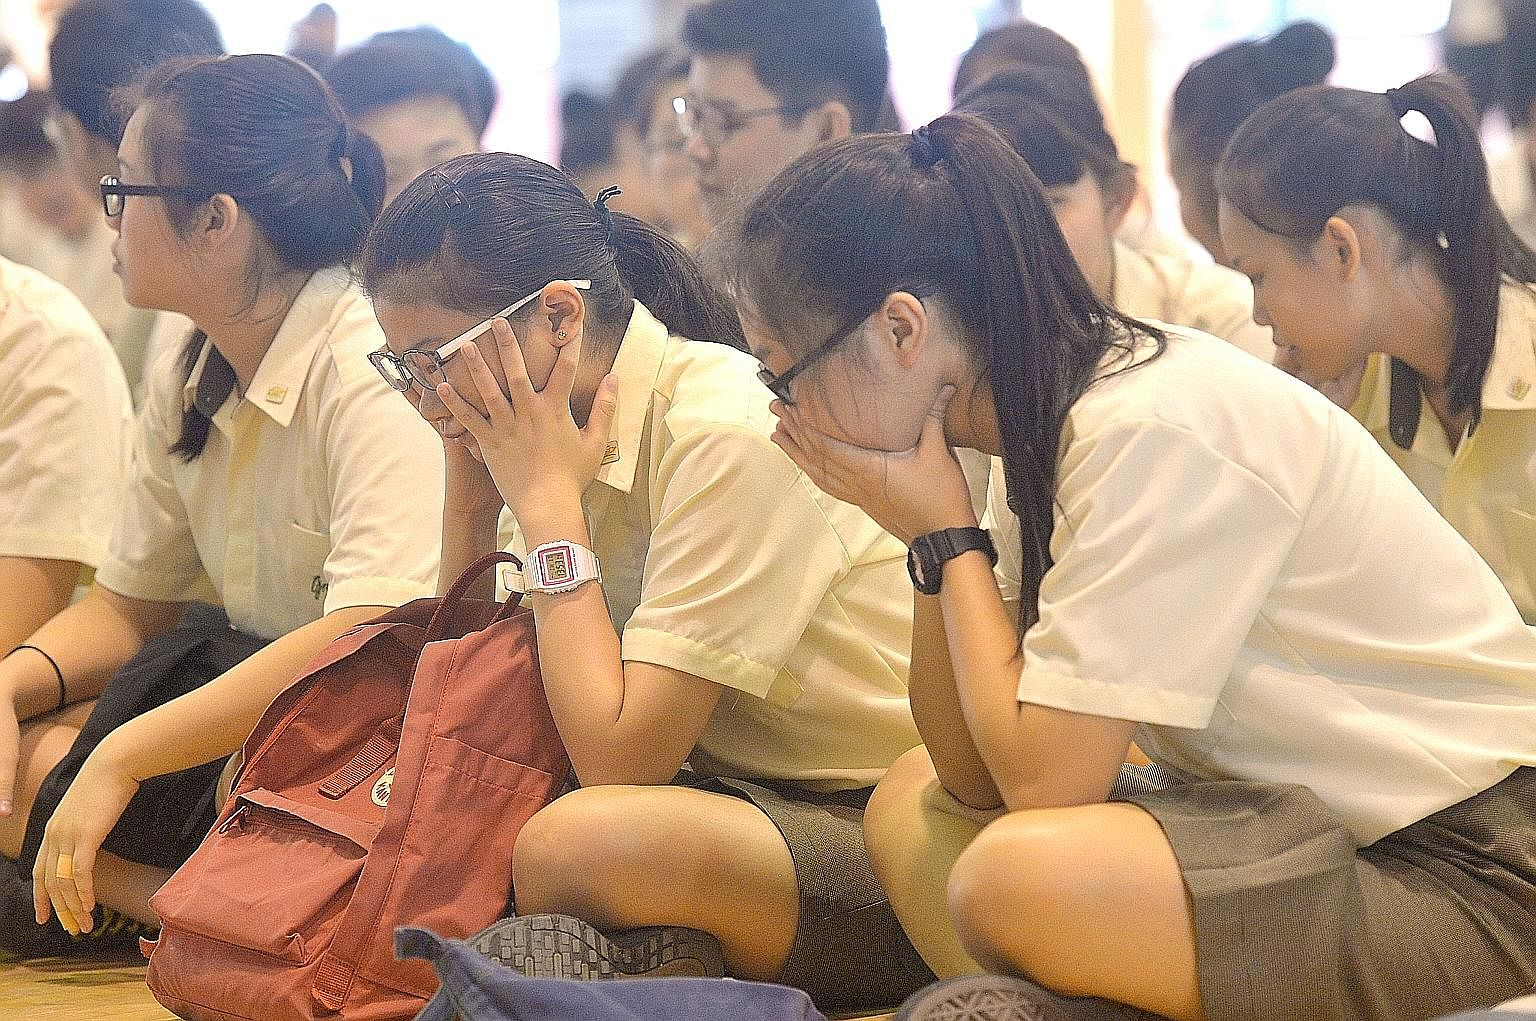 Singapore Students Suffer From High Levels Of Anxiety Study Parenting Education News Top Stories The Straits Times